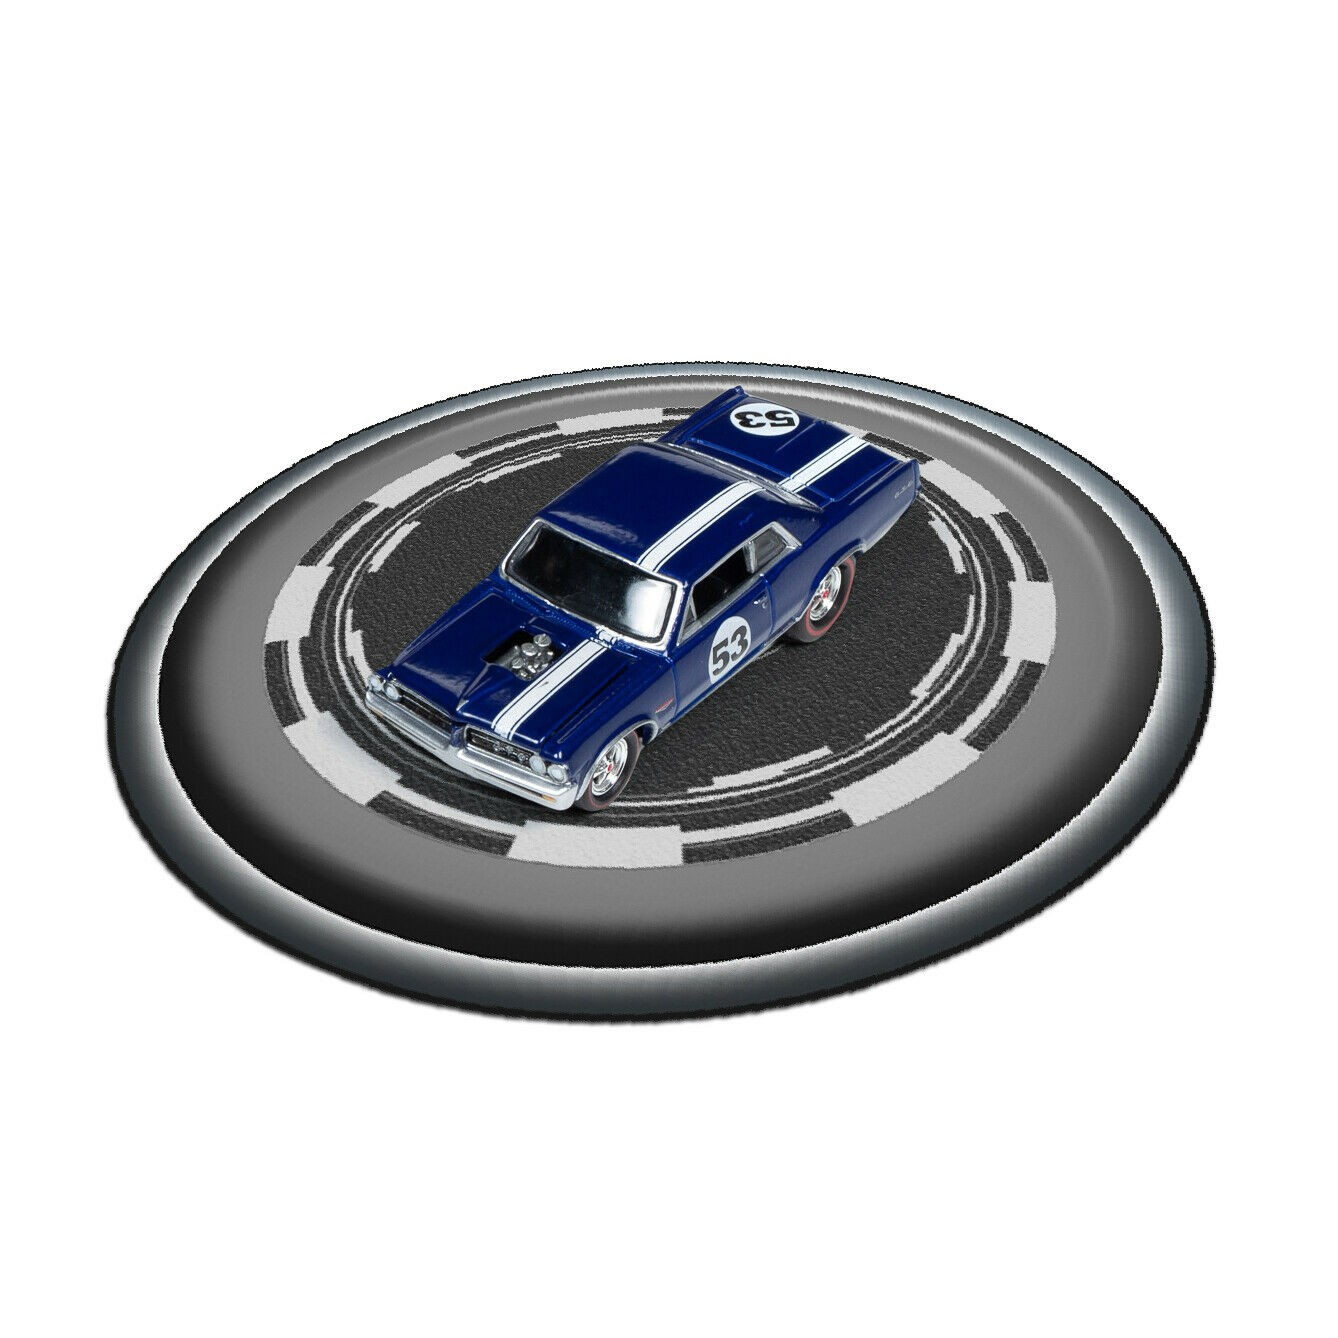 1/64 Scale: Mini Turntable Model Base for Hot Wheels and Other Diecast Cars